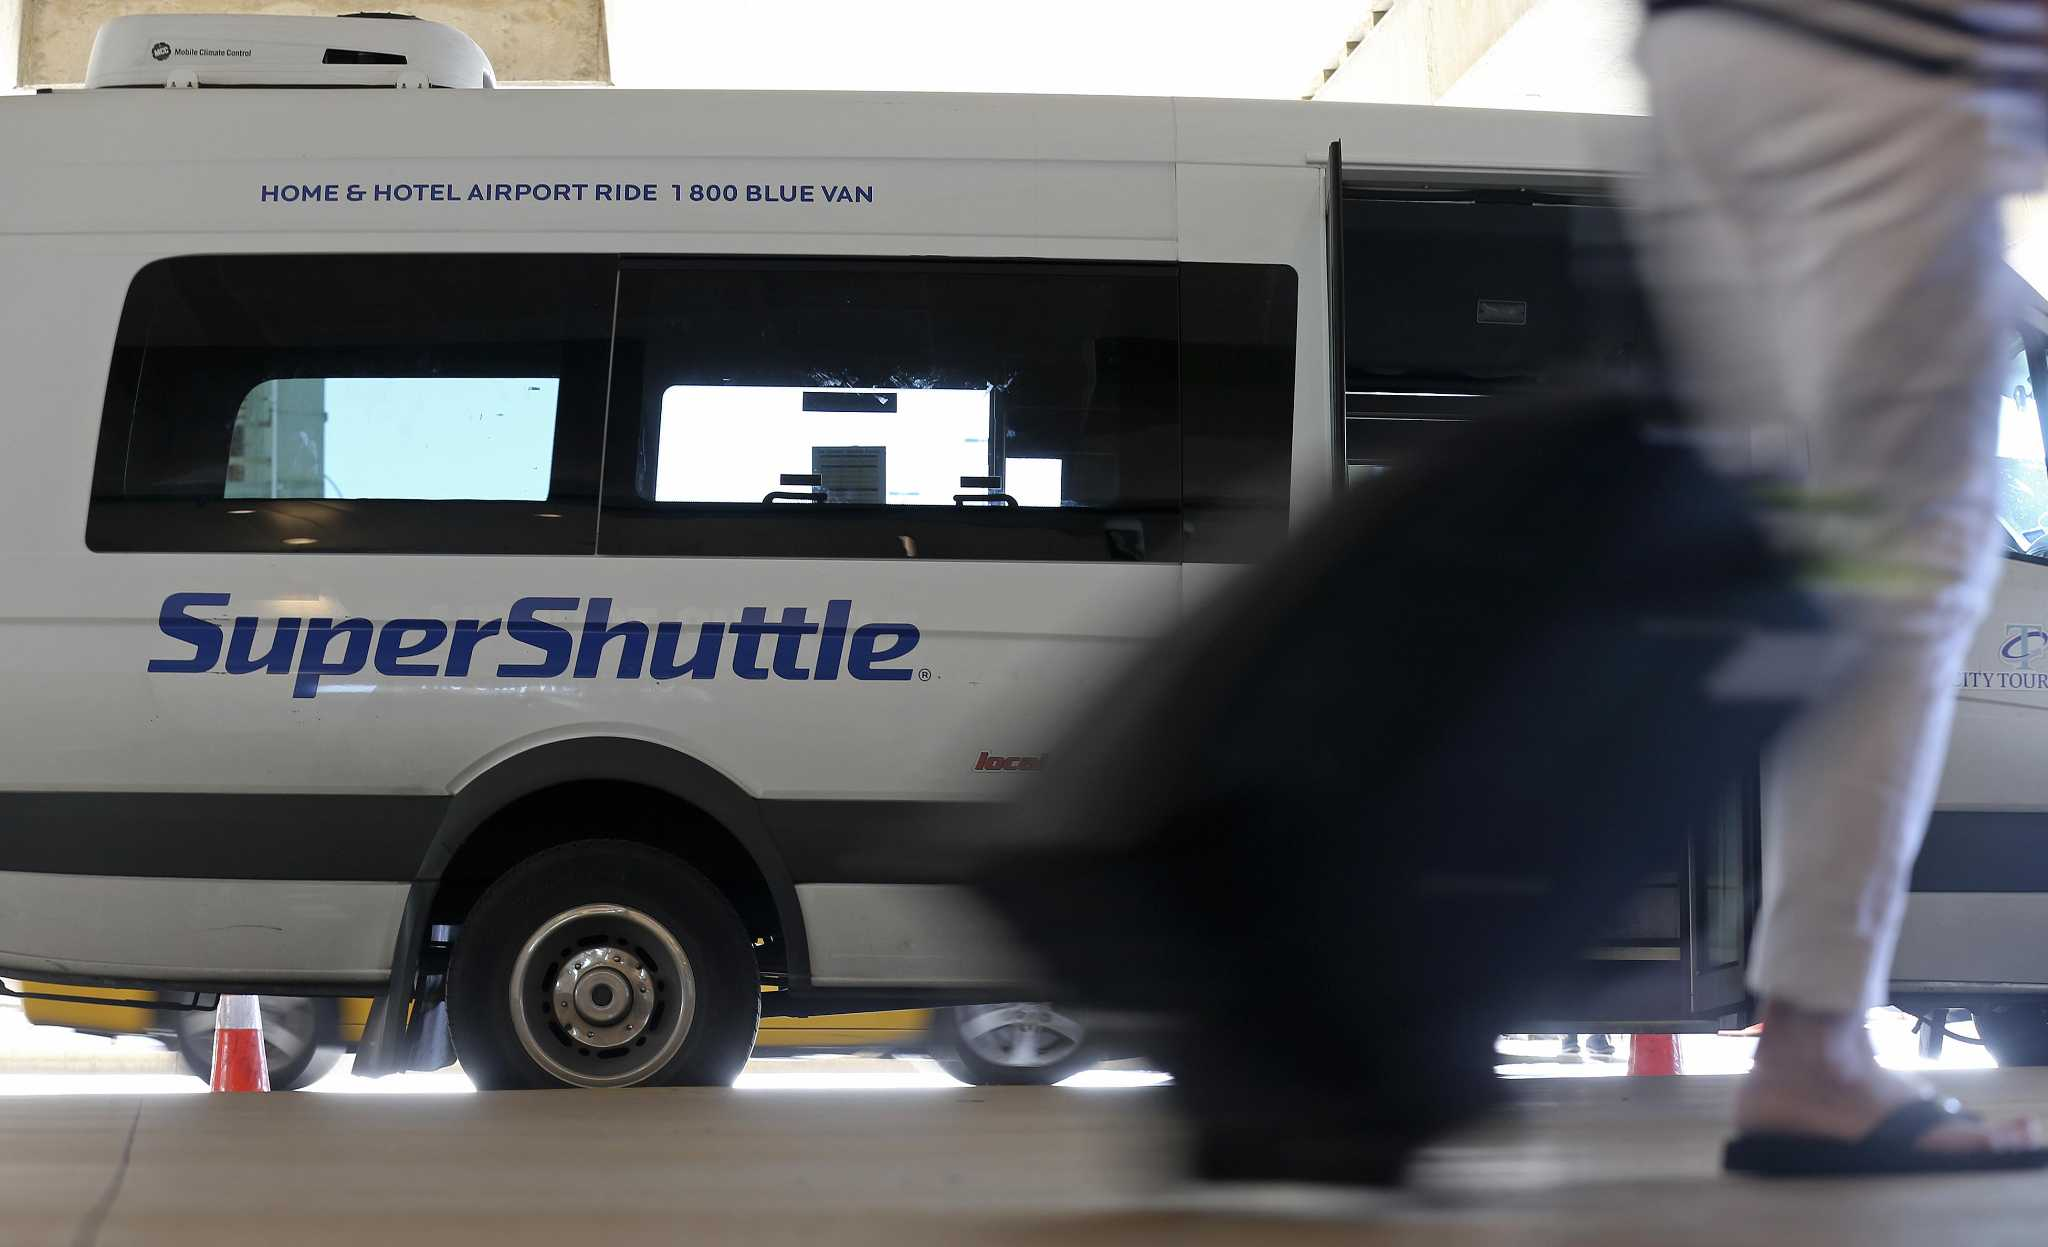 Options to meet every need. No matter your travel needs, SuperShuttle has versatile transportation solutions to fit every situation and budget! Groups large and small, families, business travelers, and solo adventurers – we make airport rides easy for you!